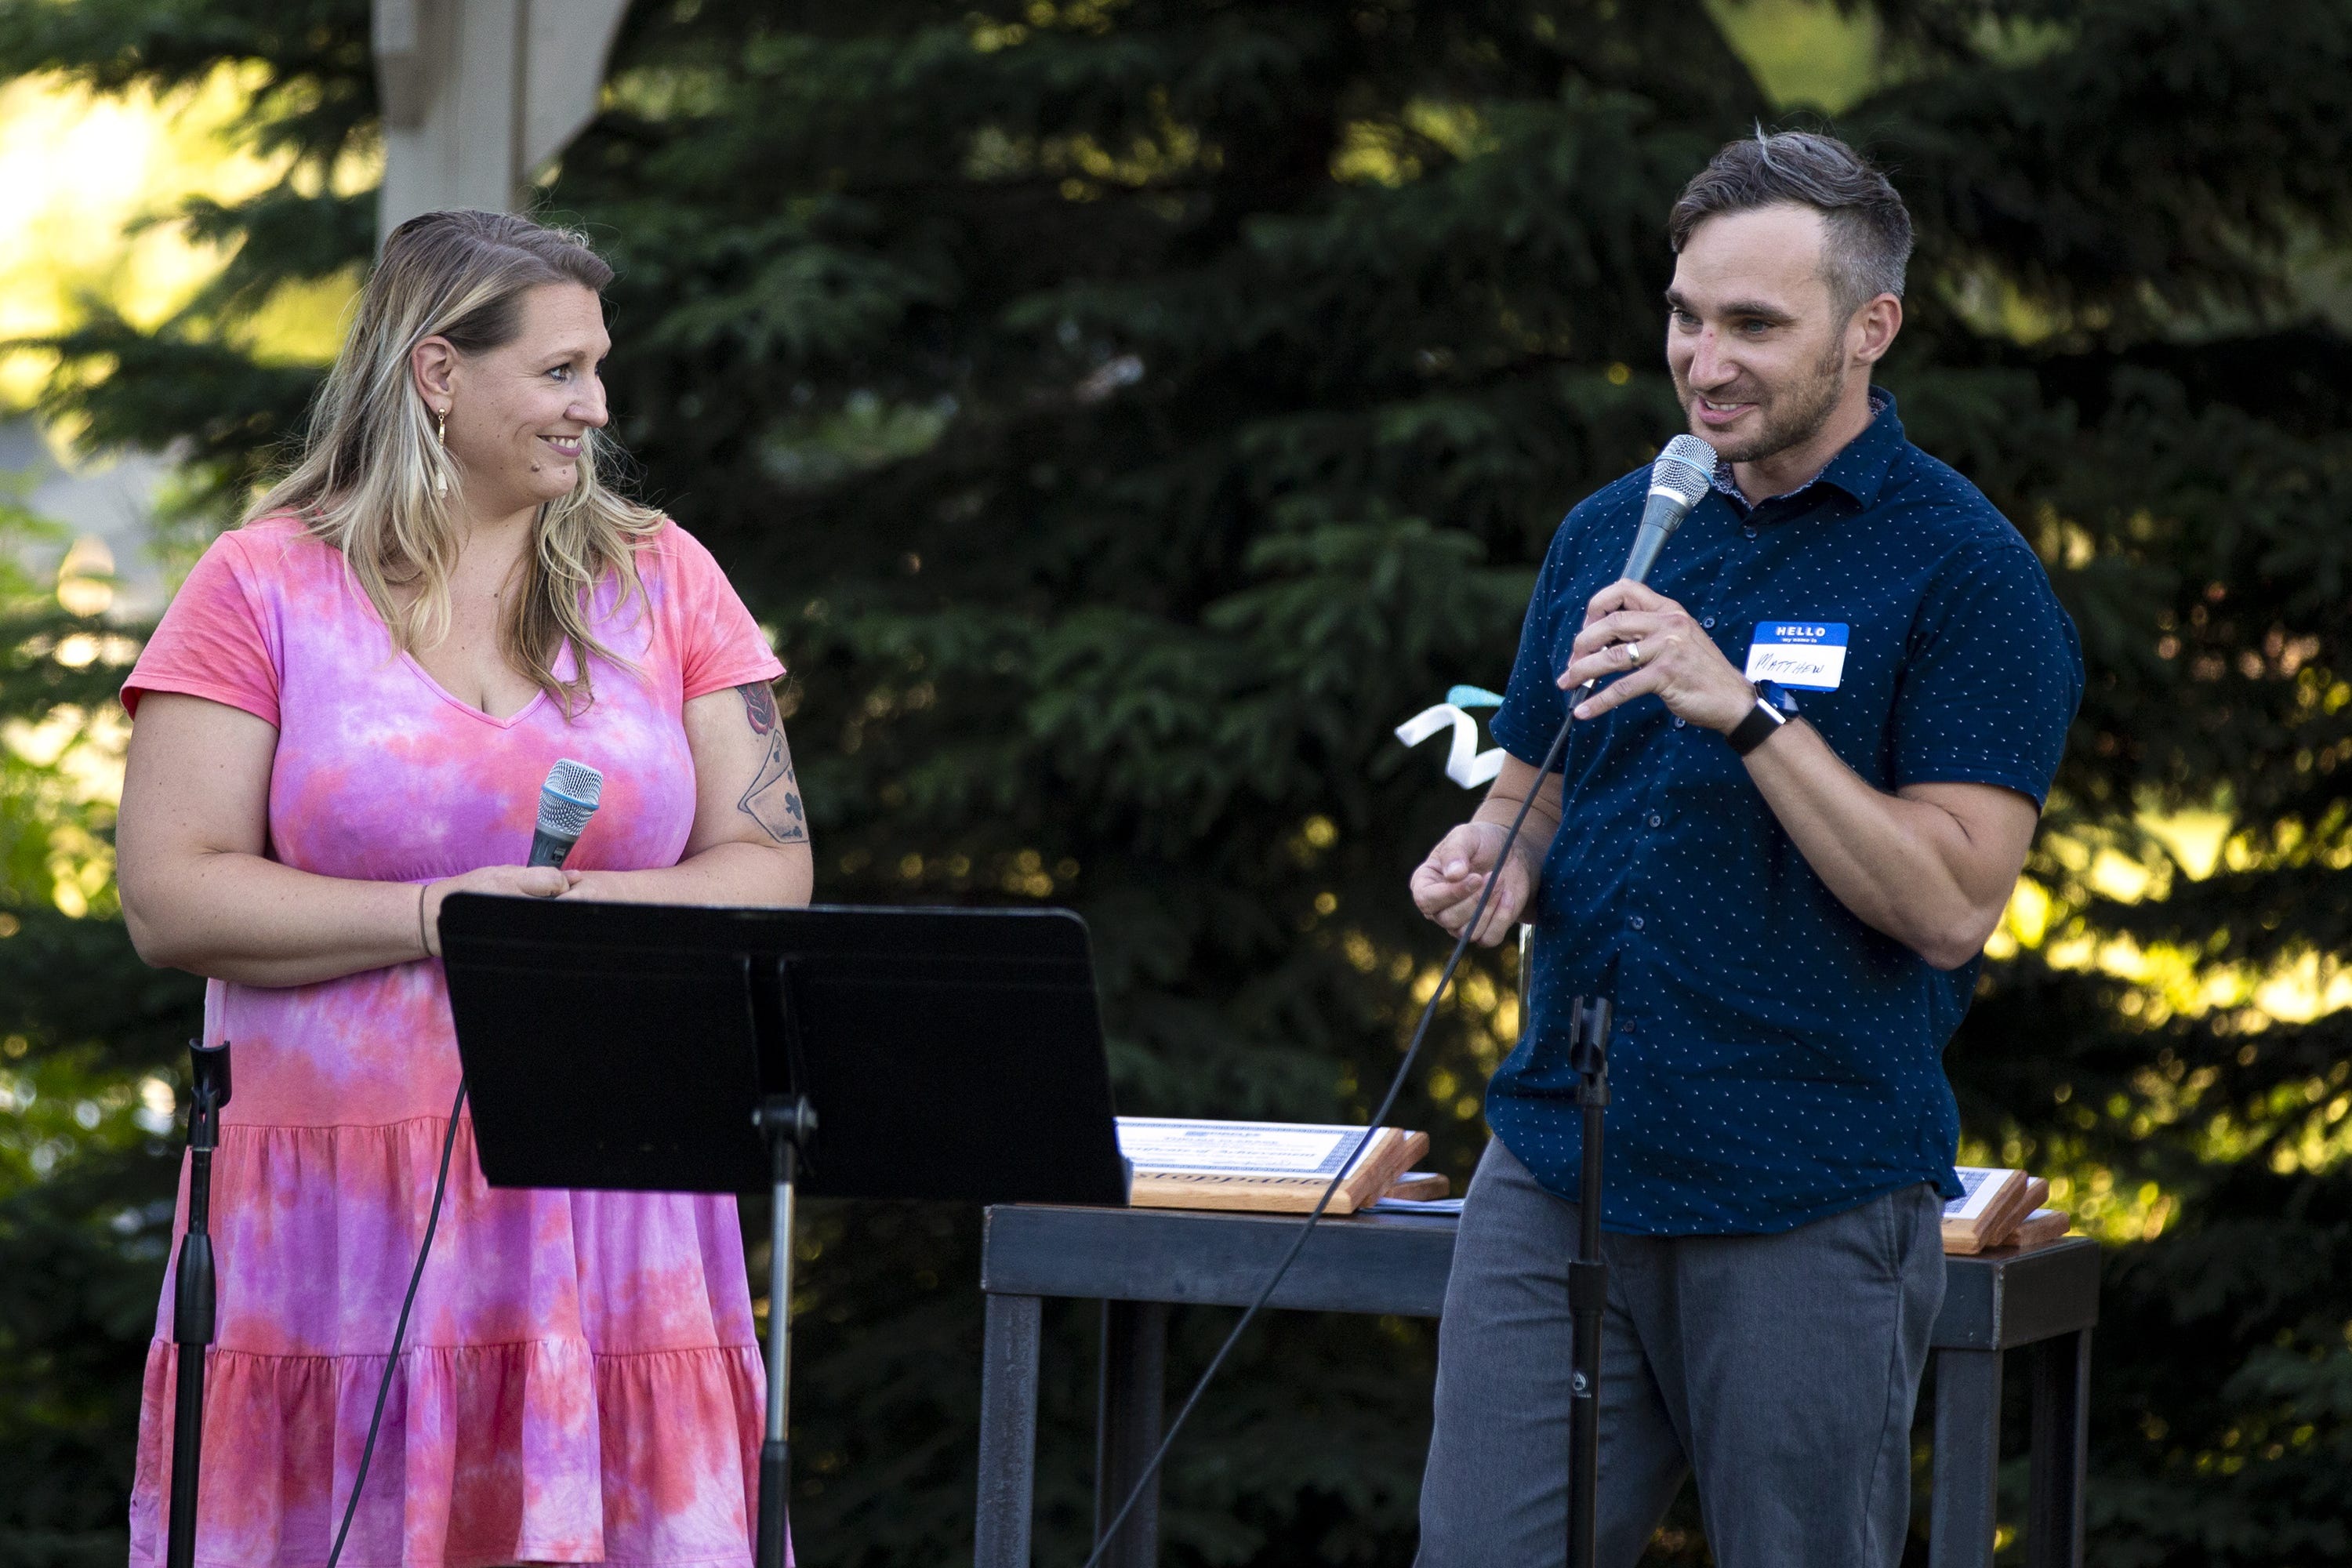 Circles Coaches, Elizabeth Clark and Matthew Hastreiter speak during Circles Green Bay commencement ceremony, at Green Bay Community Church, Monday, June 14, 2021, Green Bay, Wis. Samantha Madar/USA TODAY NETWORK-Wisconsin